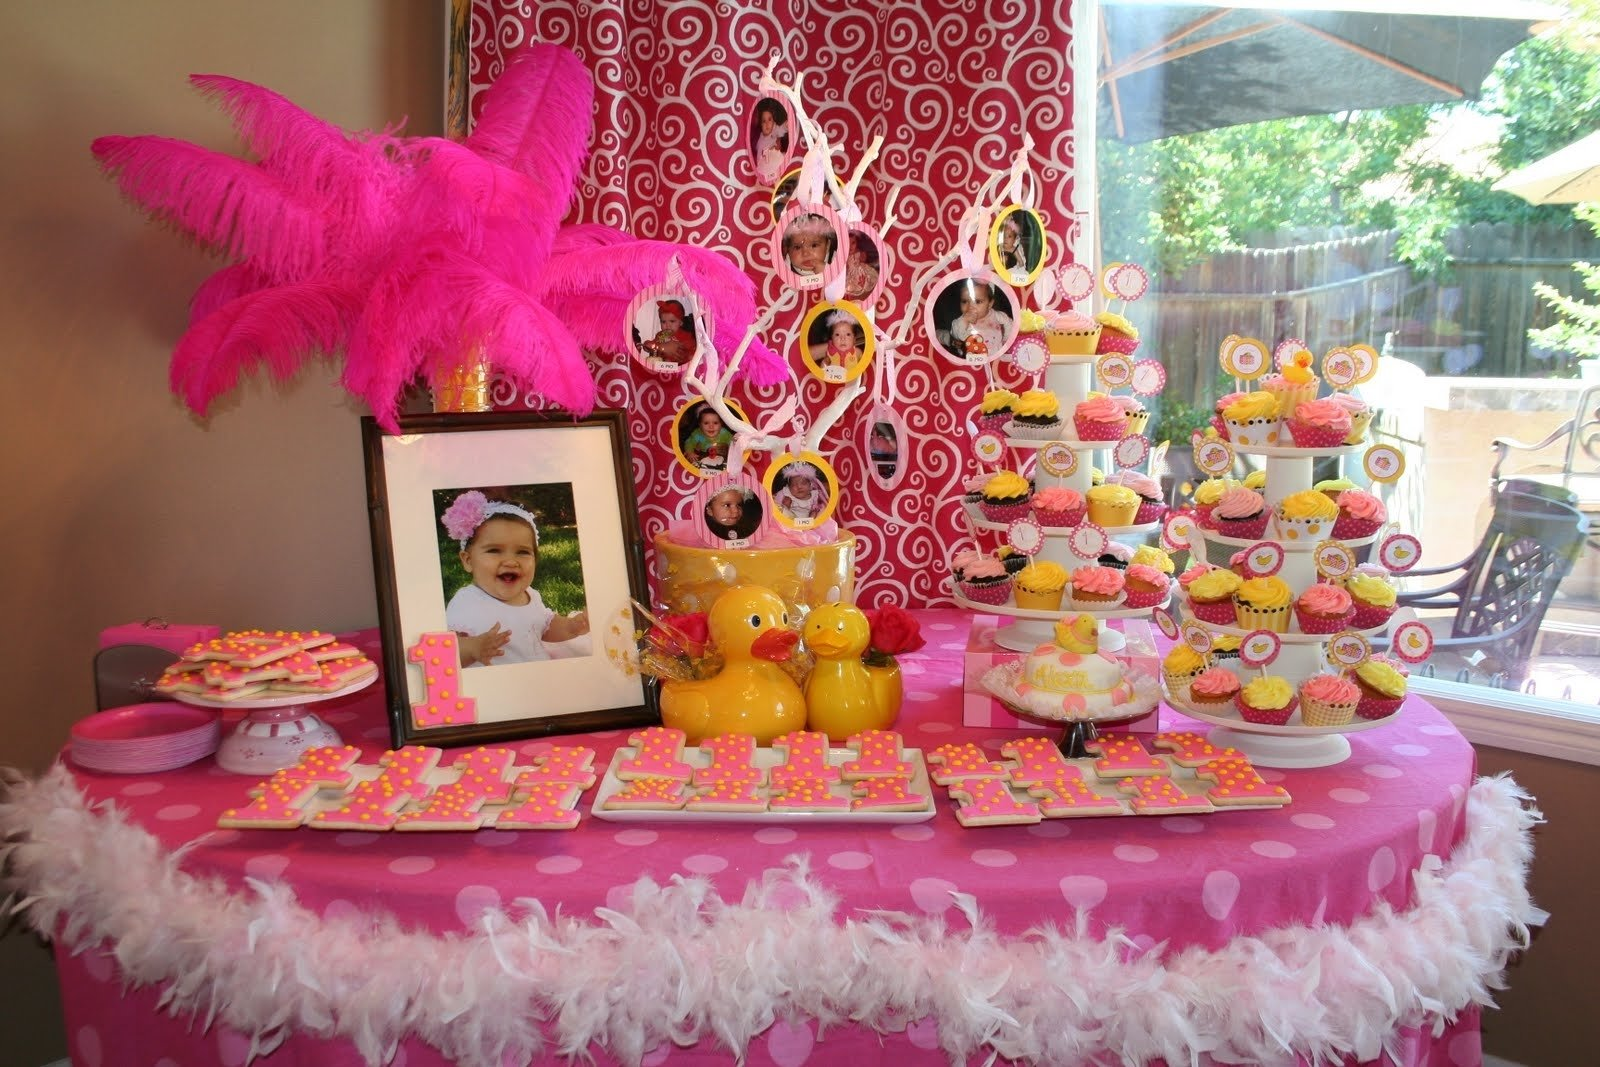 10 Most Recommended Girls 1St Birthday Party Ideas 1st birthday party ideas nisartmacka 2020